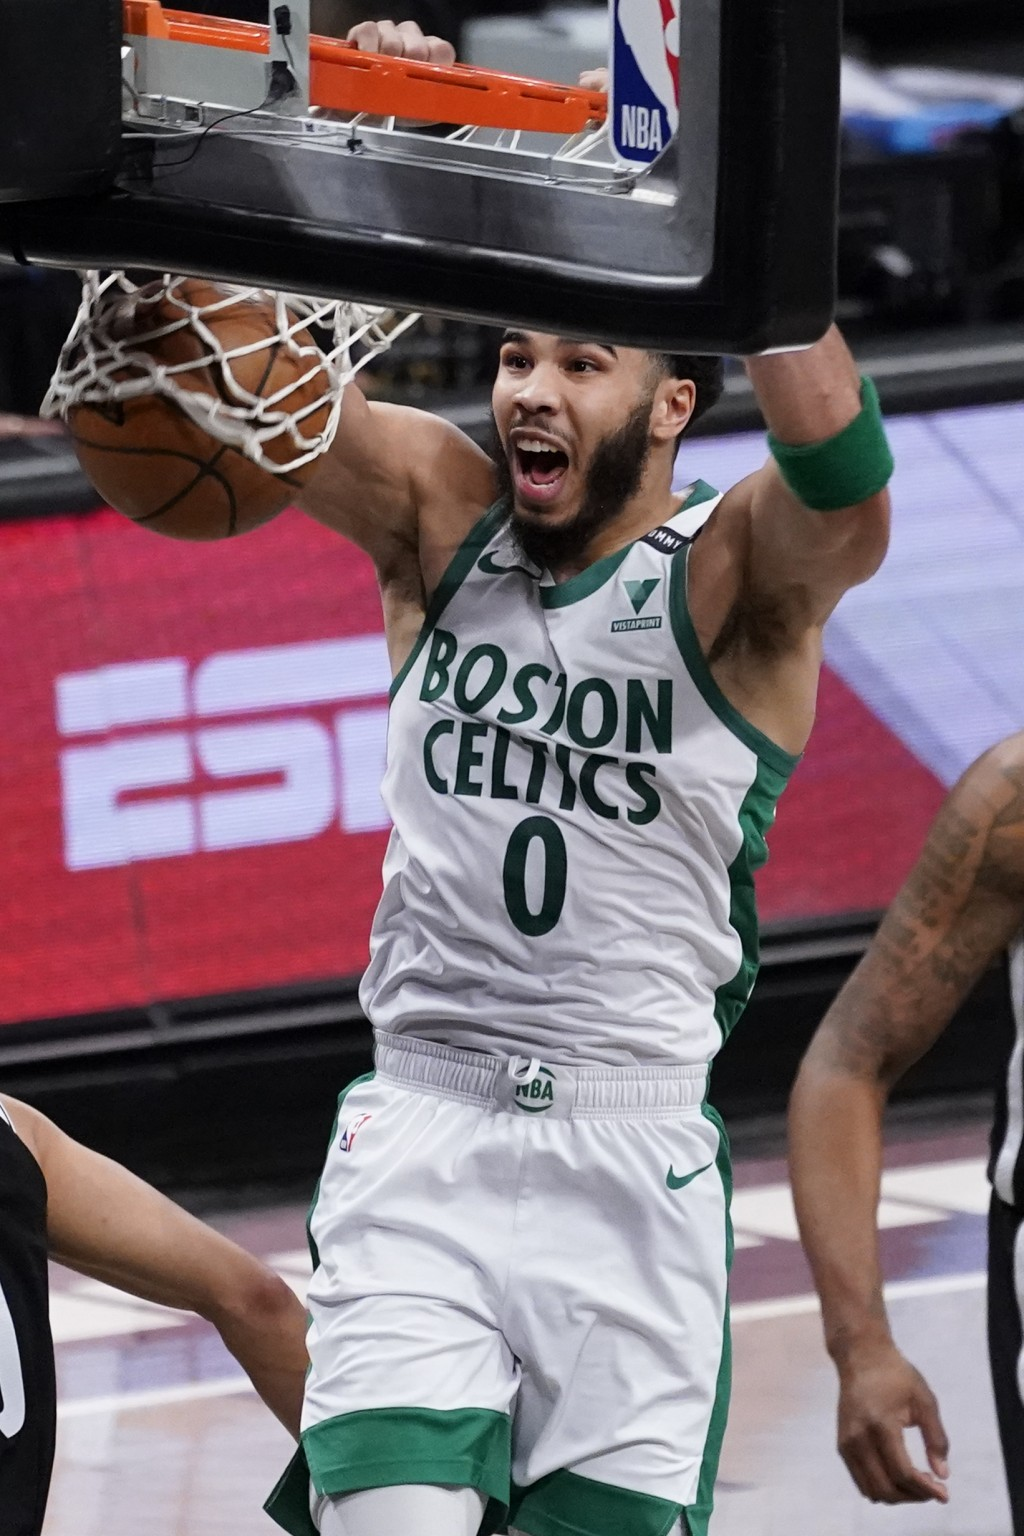 Boston Celtics forward Jayson Tatum dunks during the first half of an NBA basketball game against the Brooklyn Nets, Friday, April 23, 2021, in New Yo...